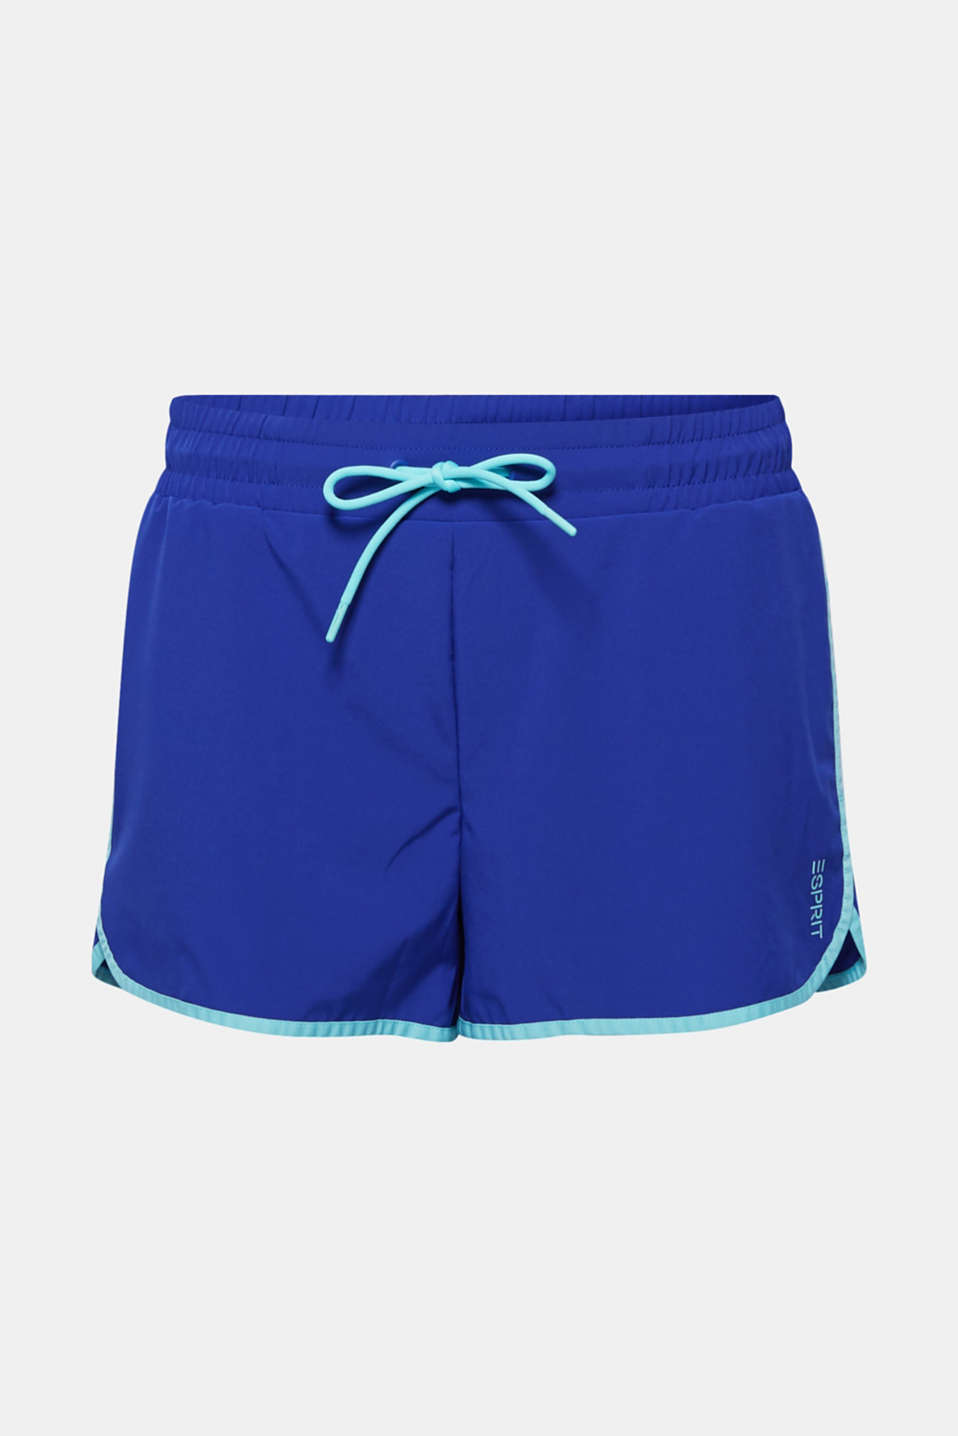 Shorts woven, BRIGHT BLUE, detail image number 6